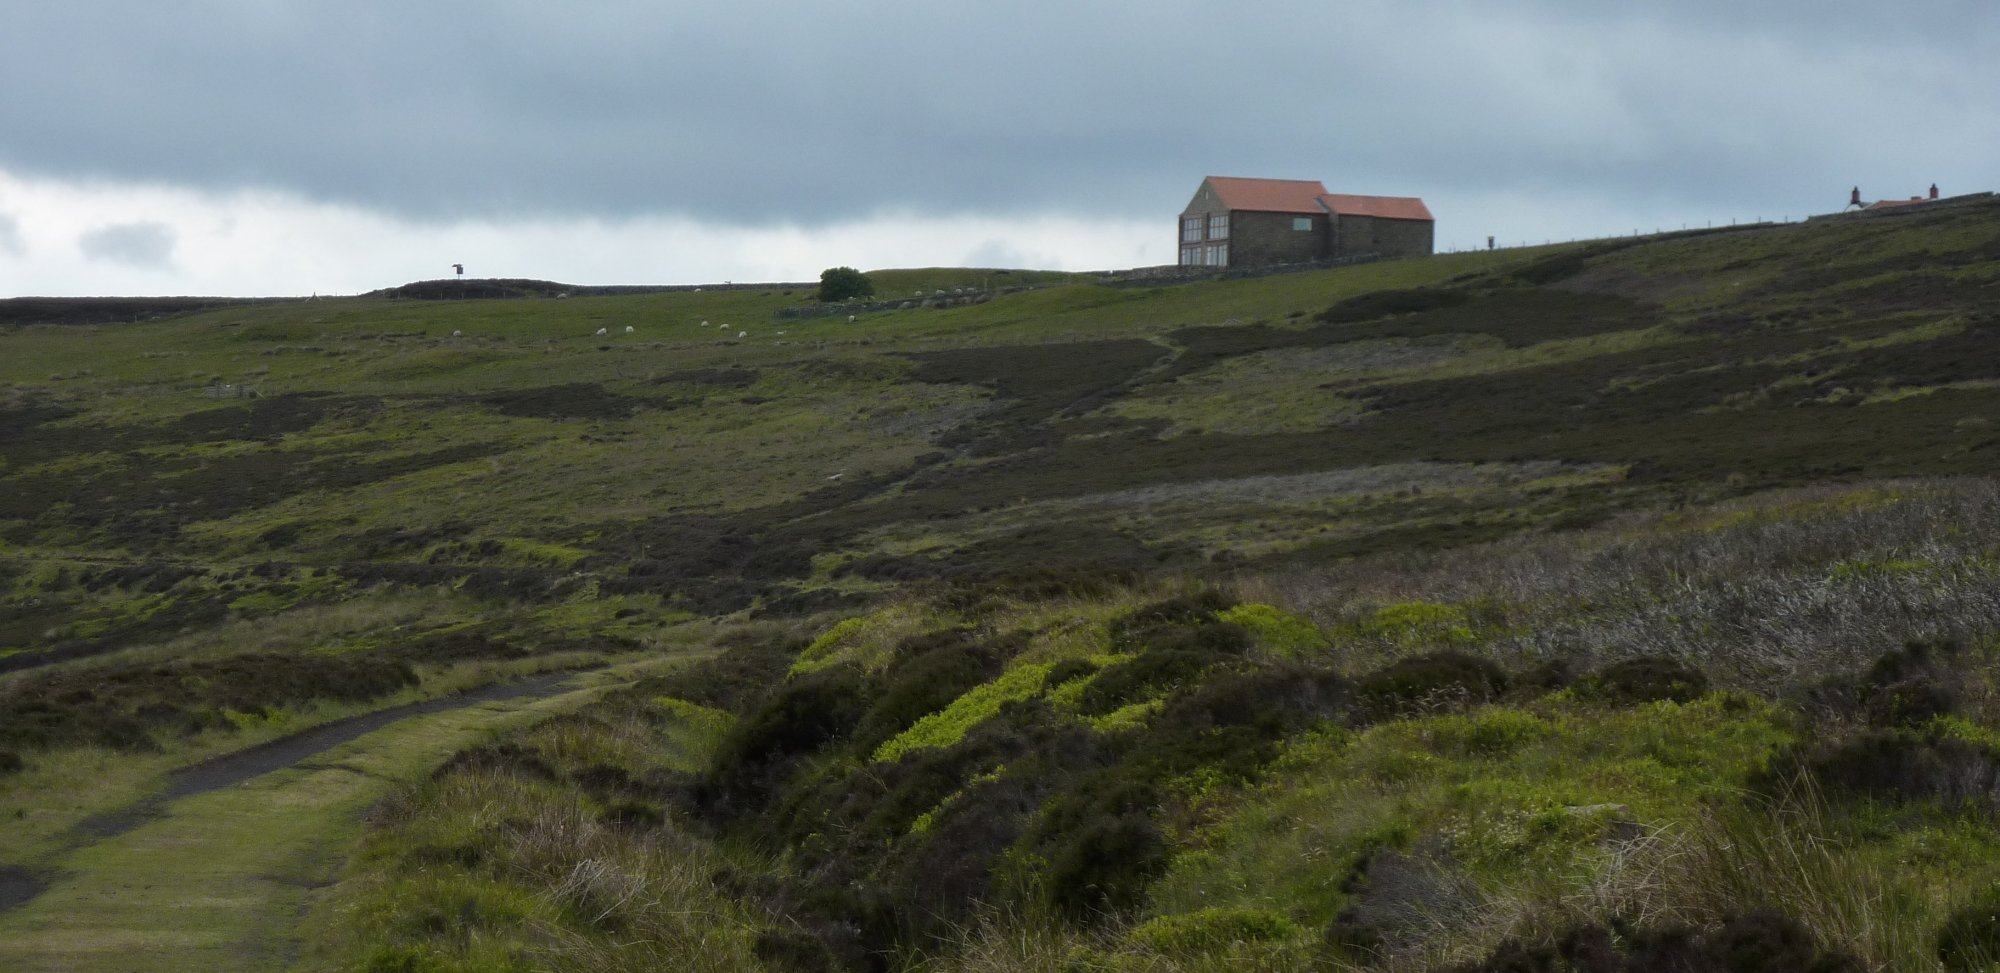 The Lion Inn can be seen from miles away